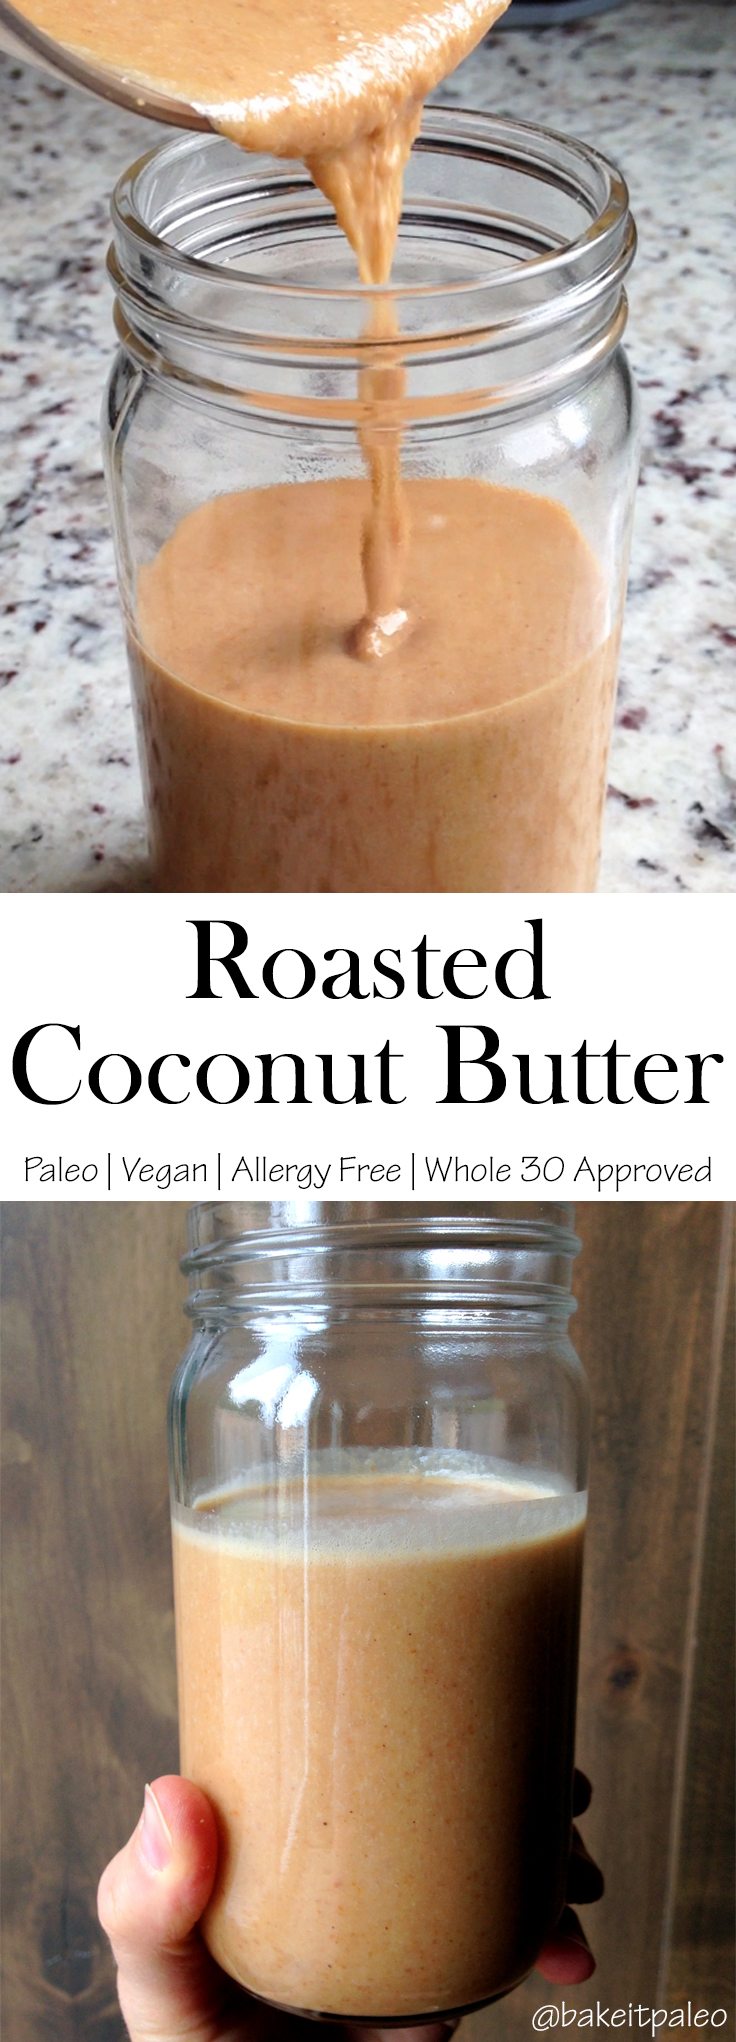 Whole 30 Approved Roasted Coconut Butter